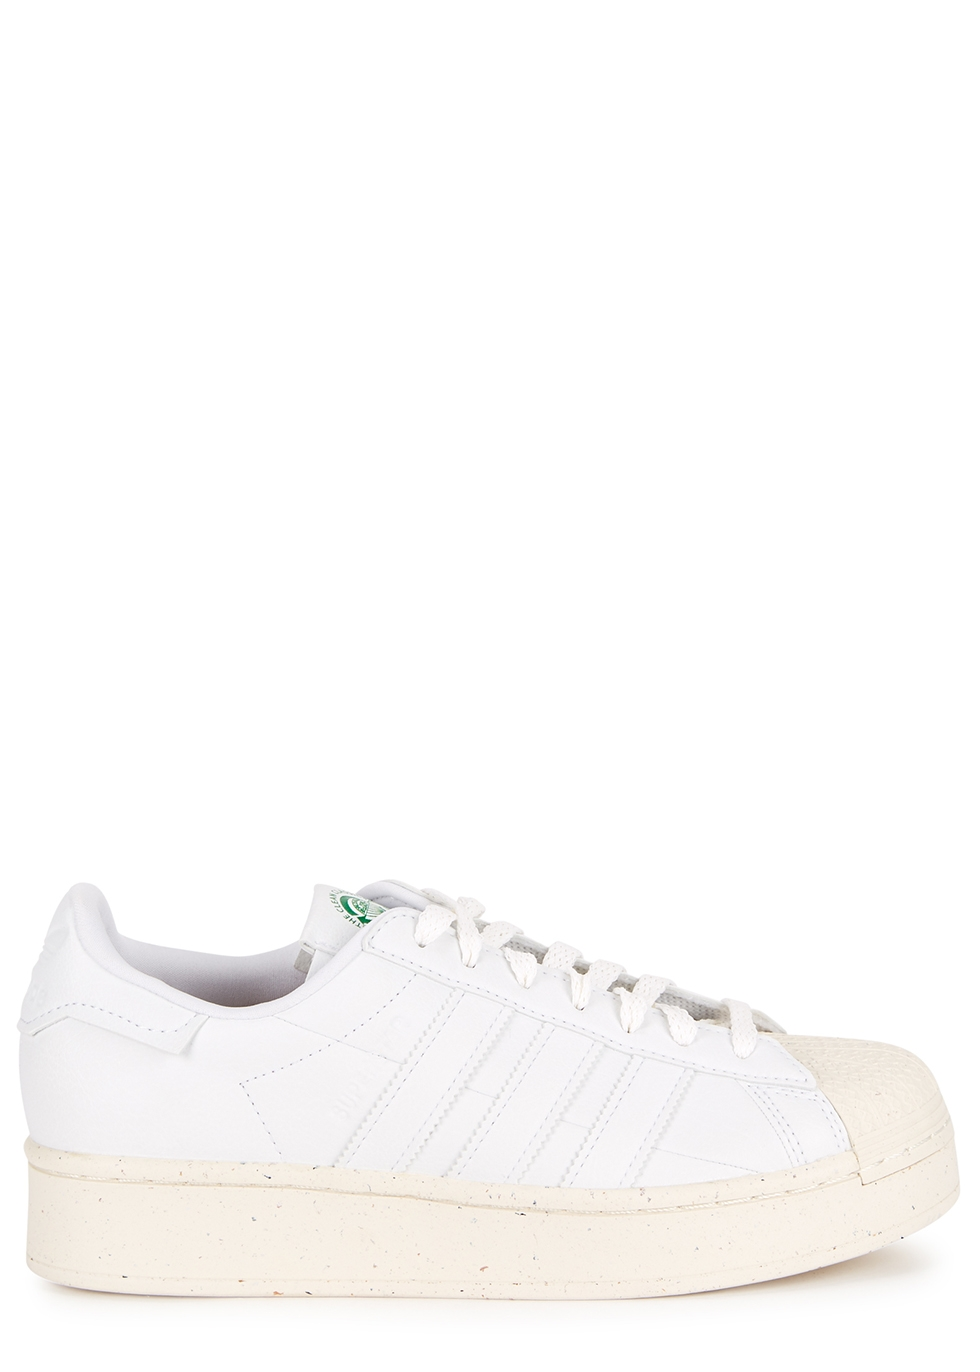 Superstar Bold Leather Sneakers ($100